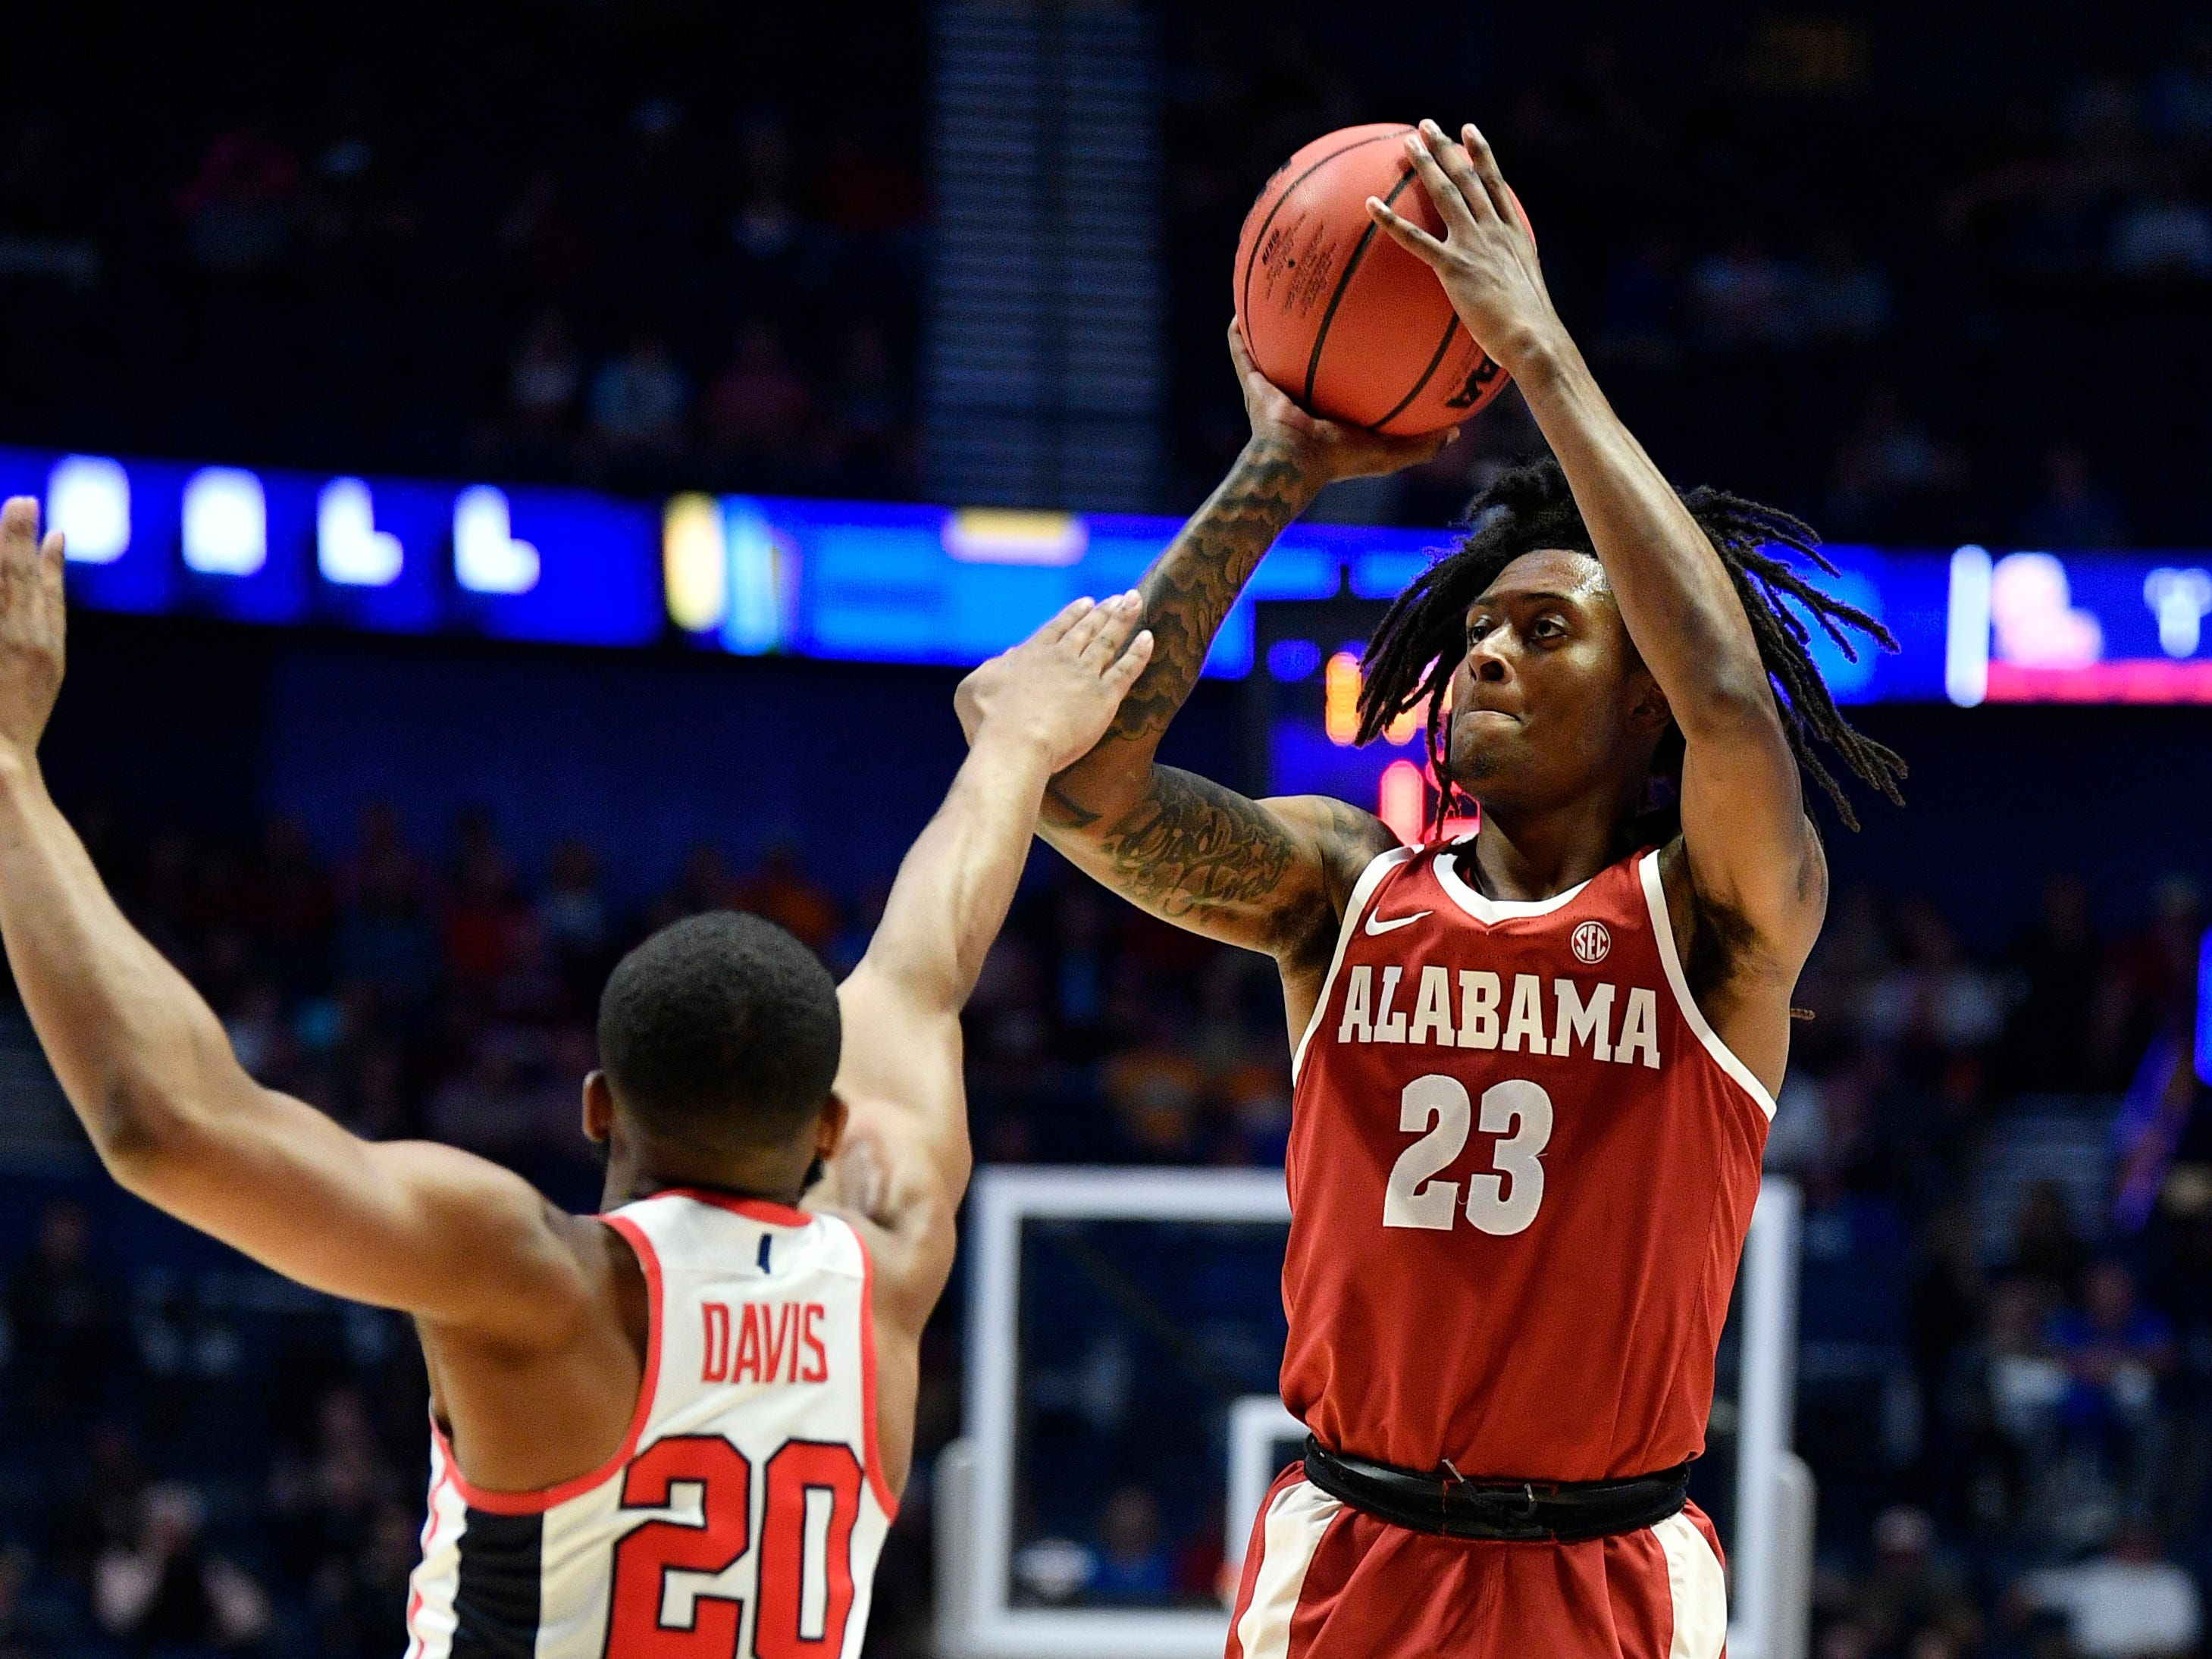 Alabama guard John Petty (23) takes a shot defended by Ole Miss guard D.C. Davis (20) during the first half of the SEC Men's Basketball Tournament game at Bridgestone Arena in Nashville, Tenn., Thursday, March 14, 2019.